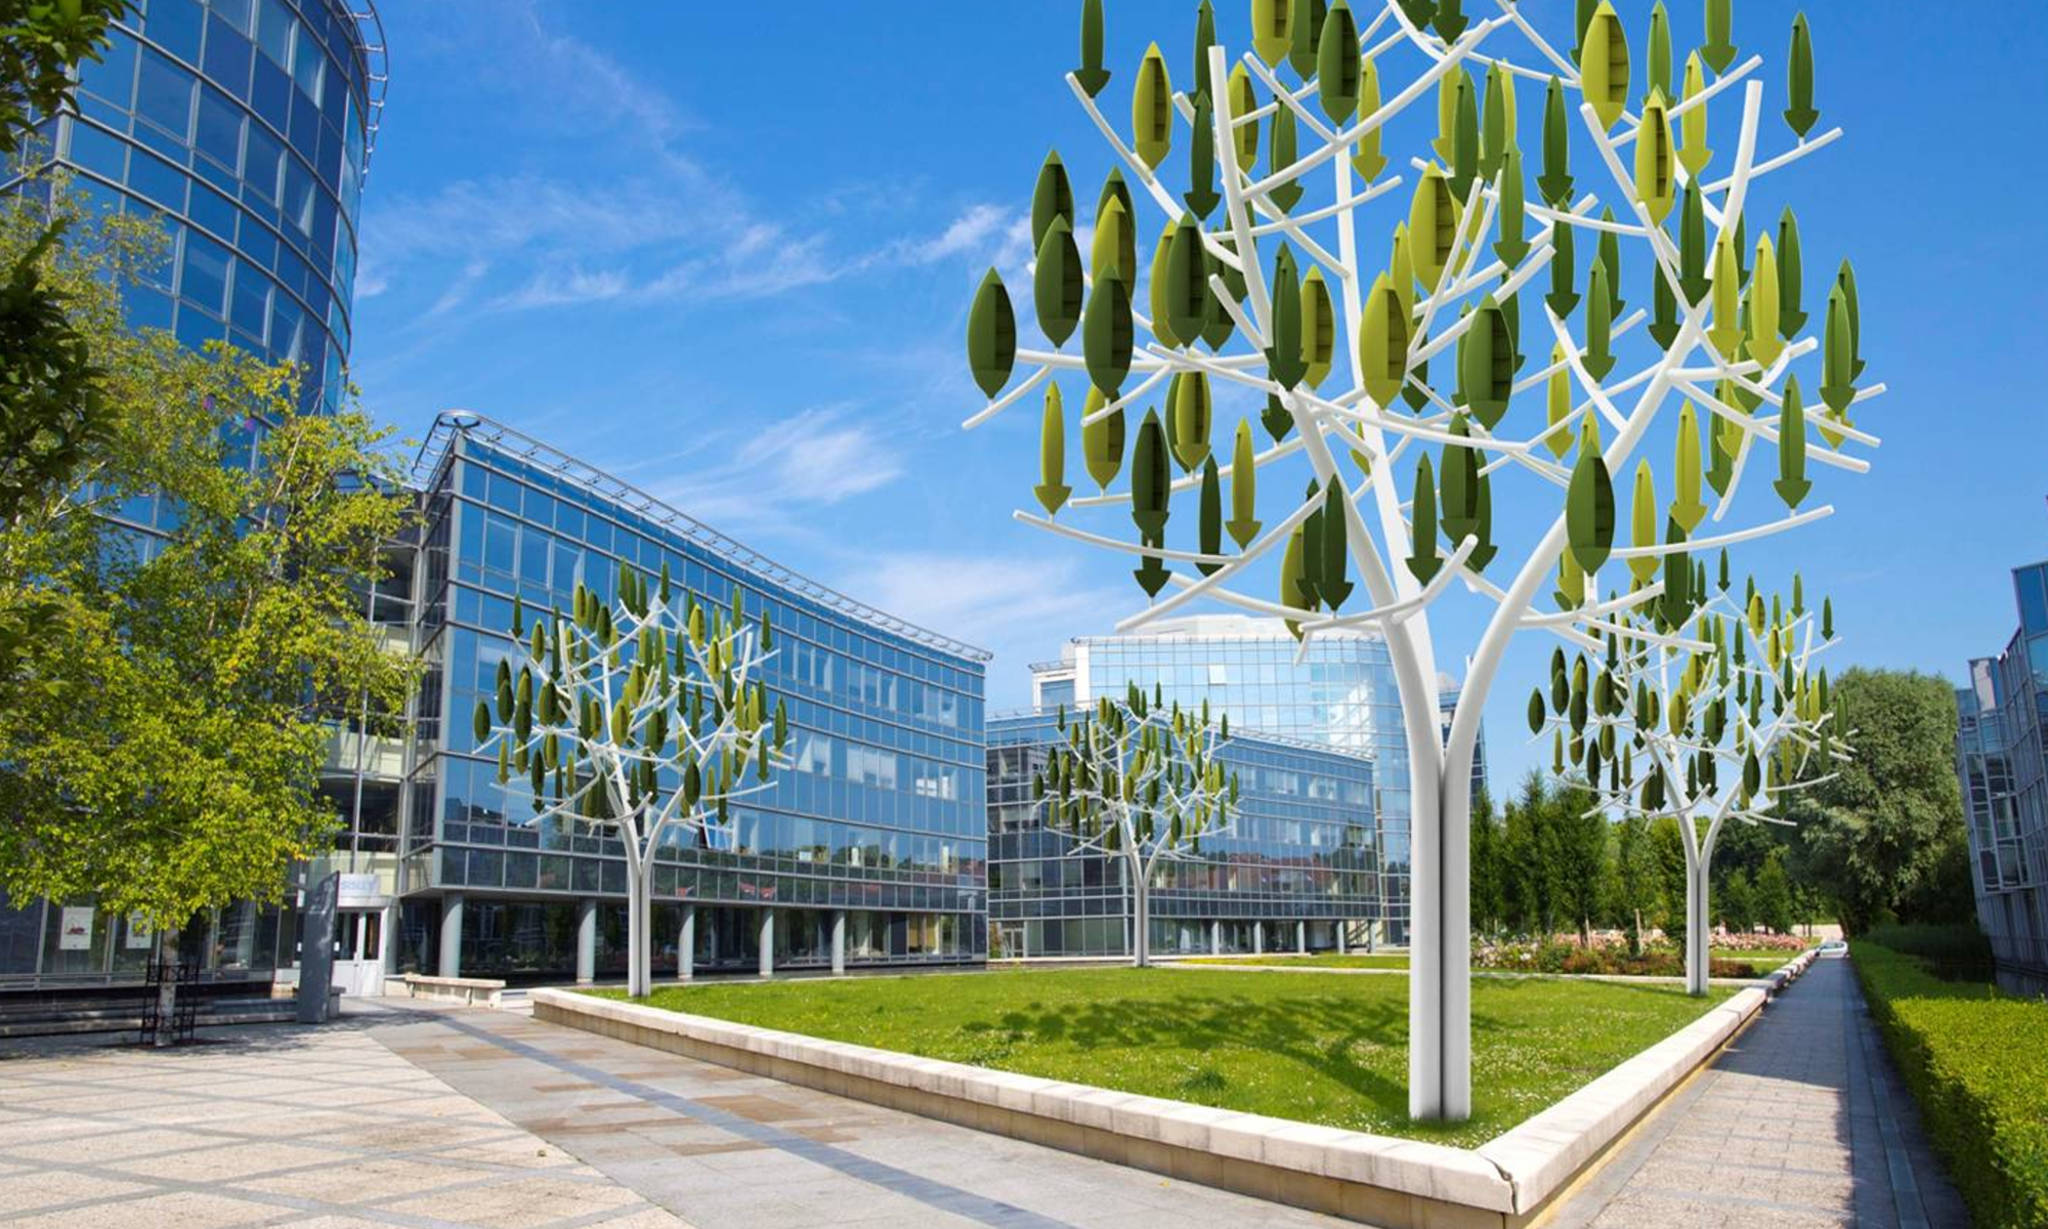 Power grows on trees wind energy via leafy green turbines Wind architecture